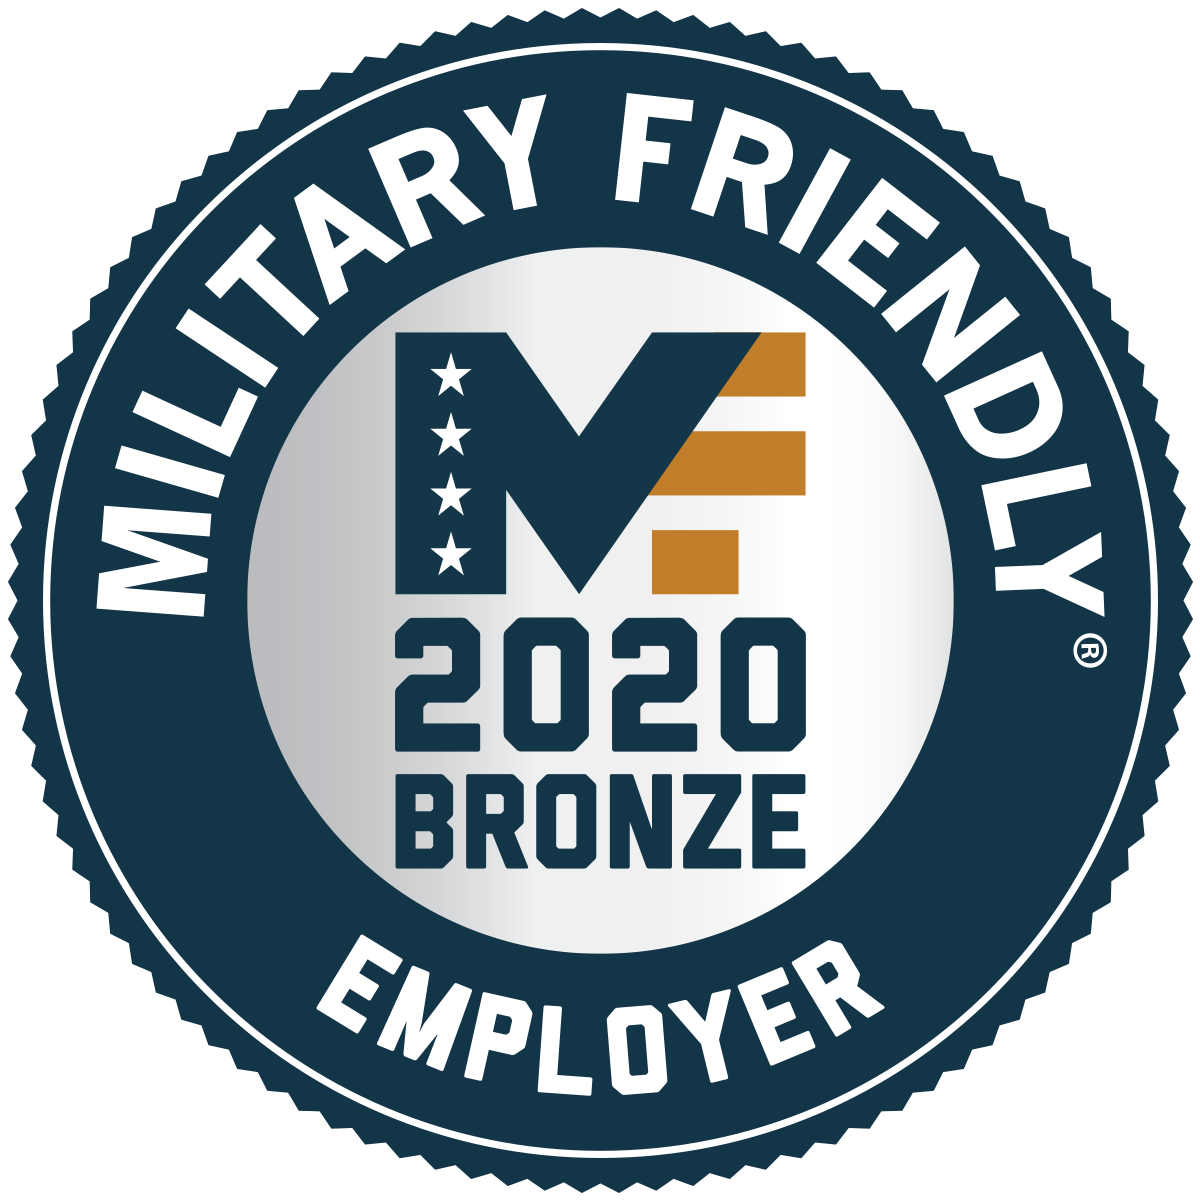 Military Friendly Companyr - MF'19 Award